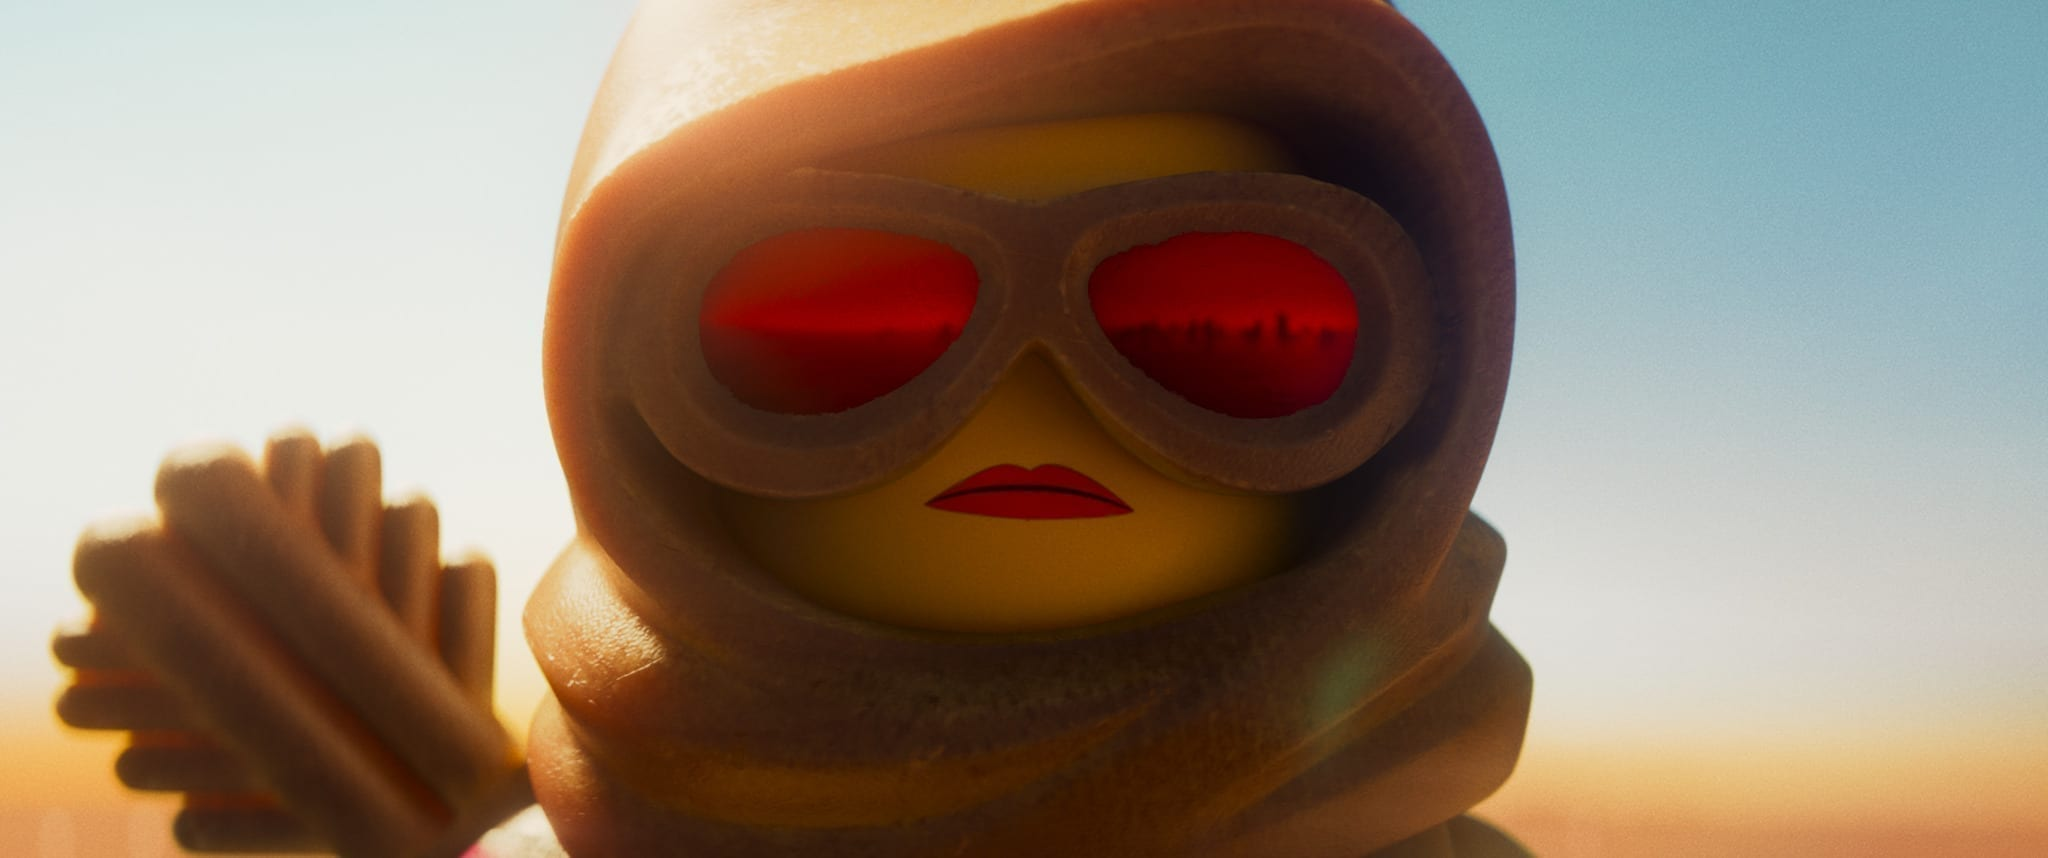 """Lucy (ELIZABETH BANKS) in a scene from the animated adventure sequel """"The LEGO® Movie 2: The Second Part,"""" from Warner Bros. Pictures and Warner Animation Group, in association with LEGO System A/S, a Warner Bros. Pictures release."""